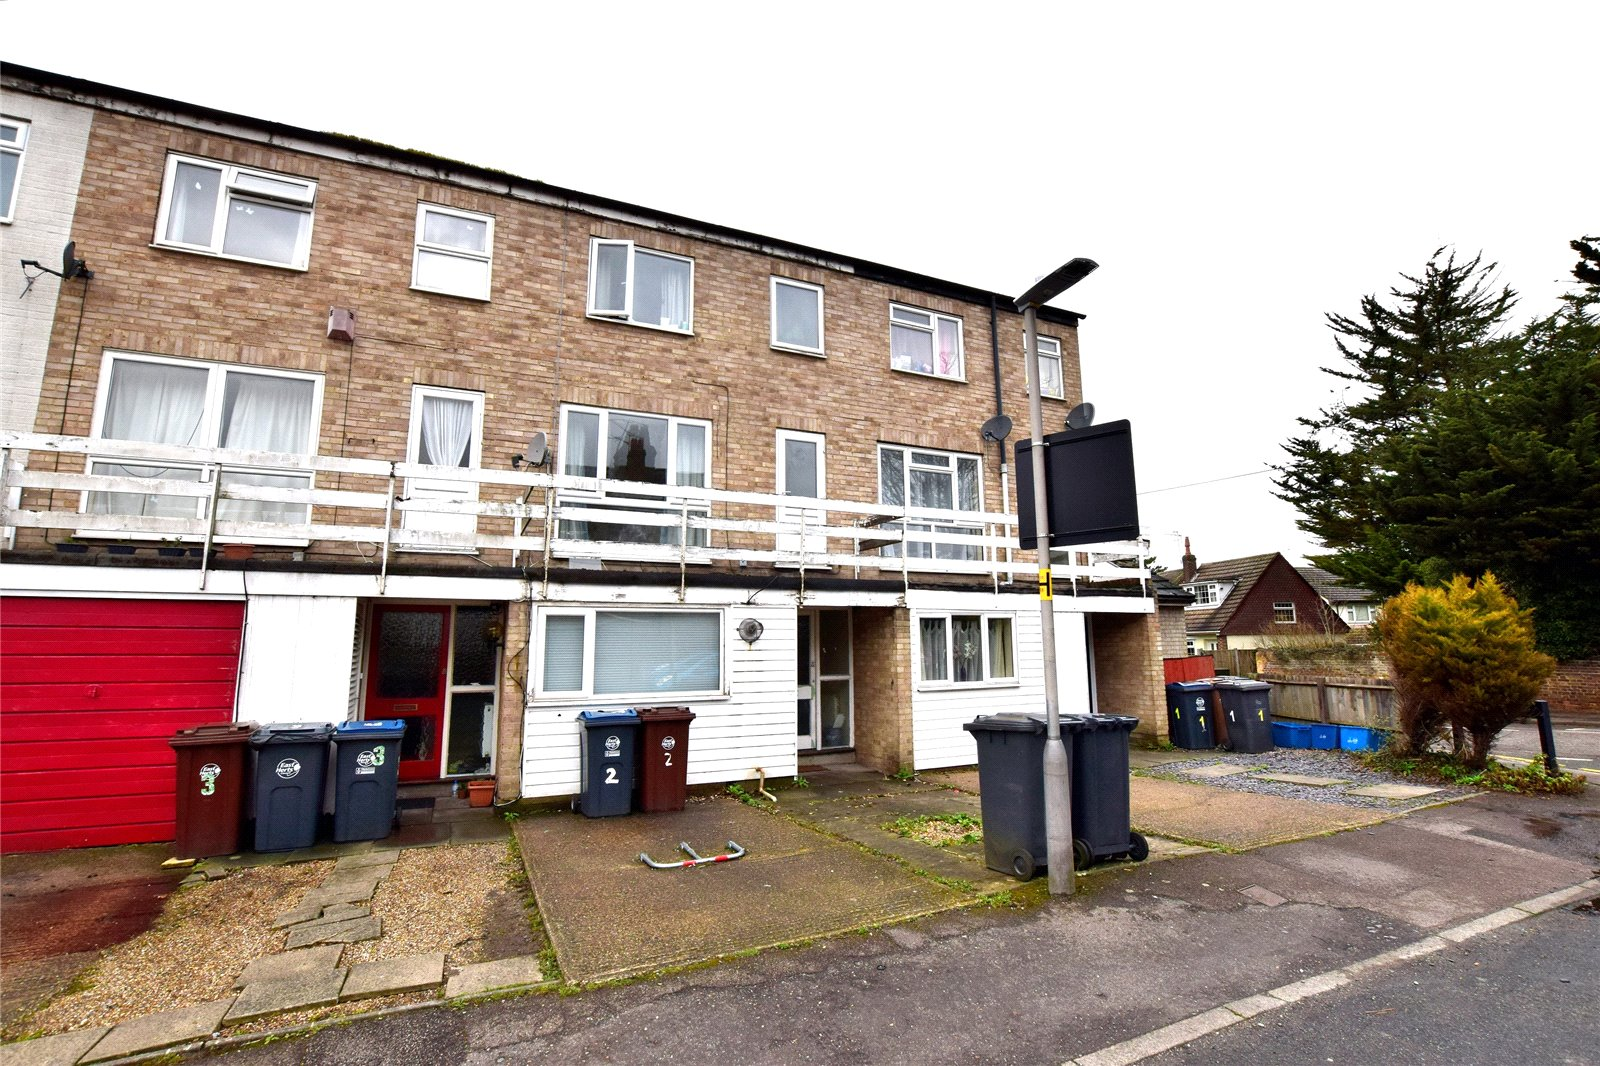 6 Bedrooms Terraced House for sale in Bishop's Stortford